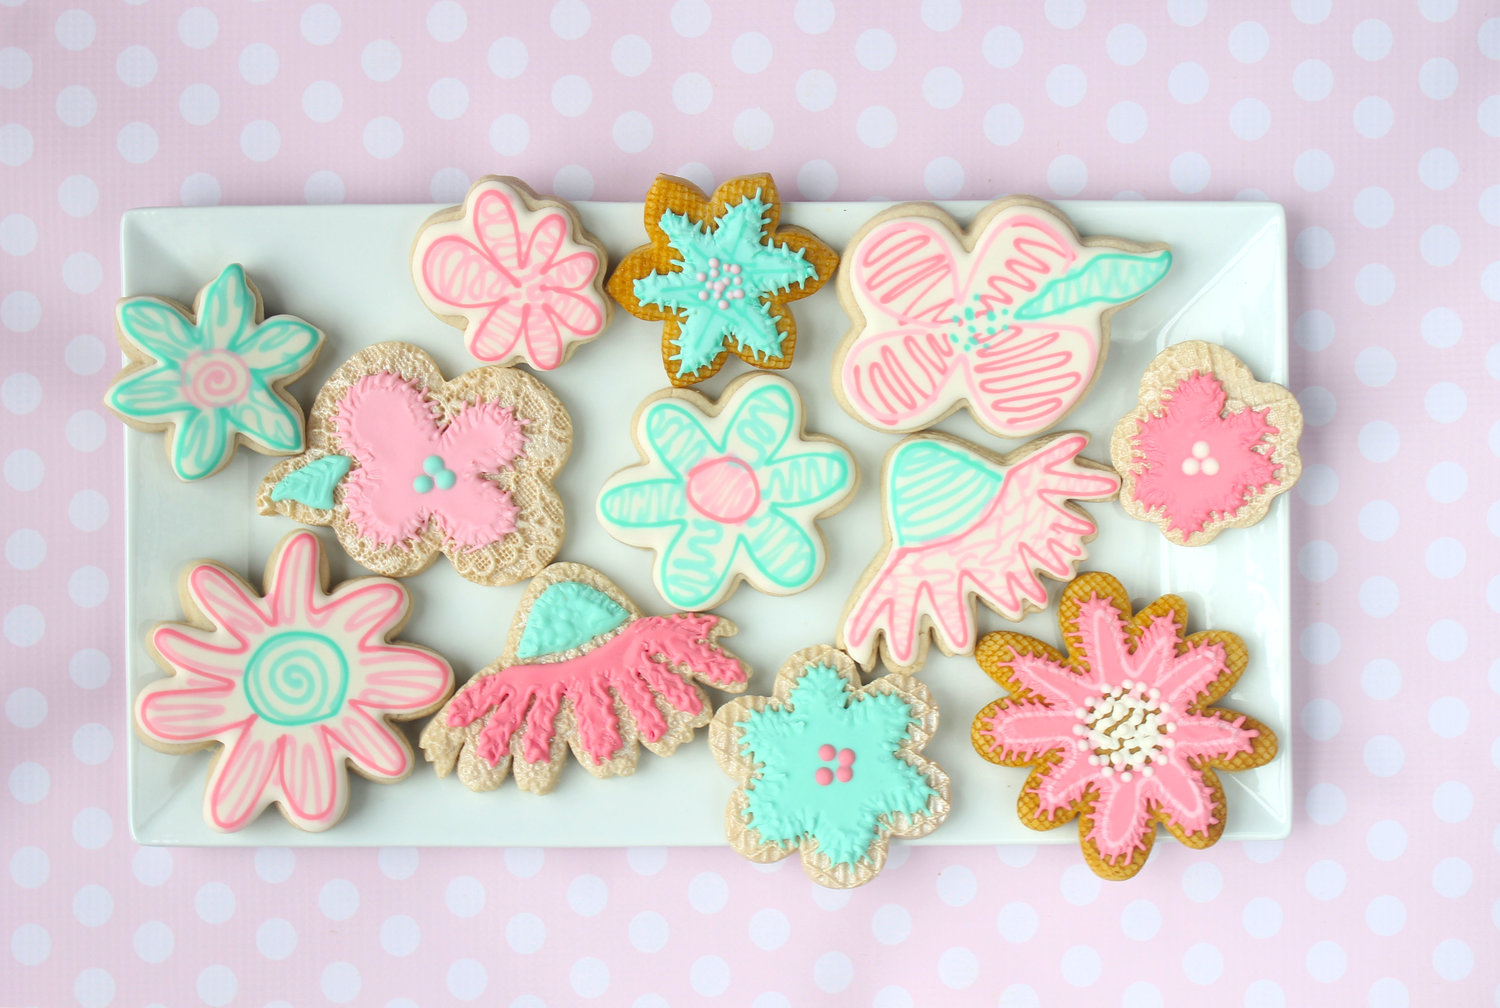 Heres May Flowers From April Showers Decorated Cookies Cookiecrazie